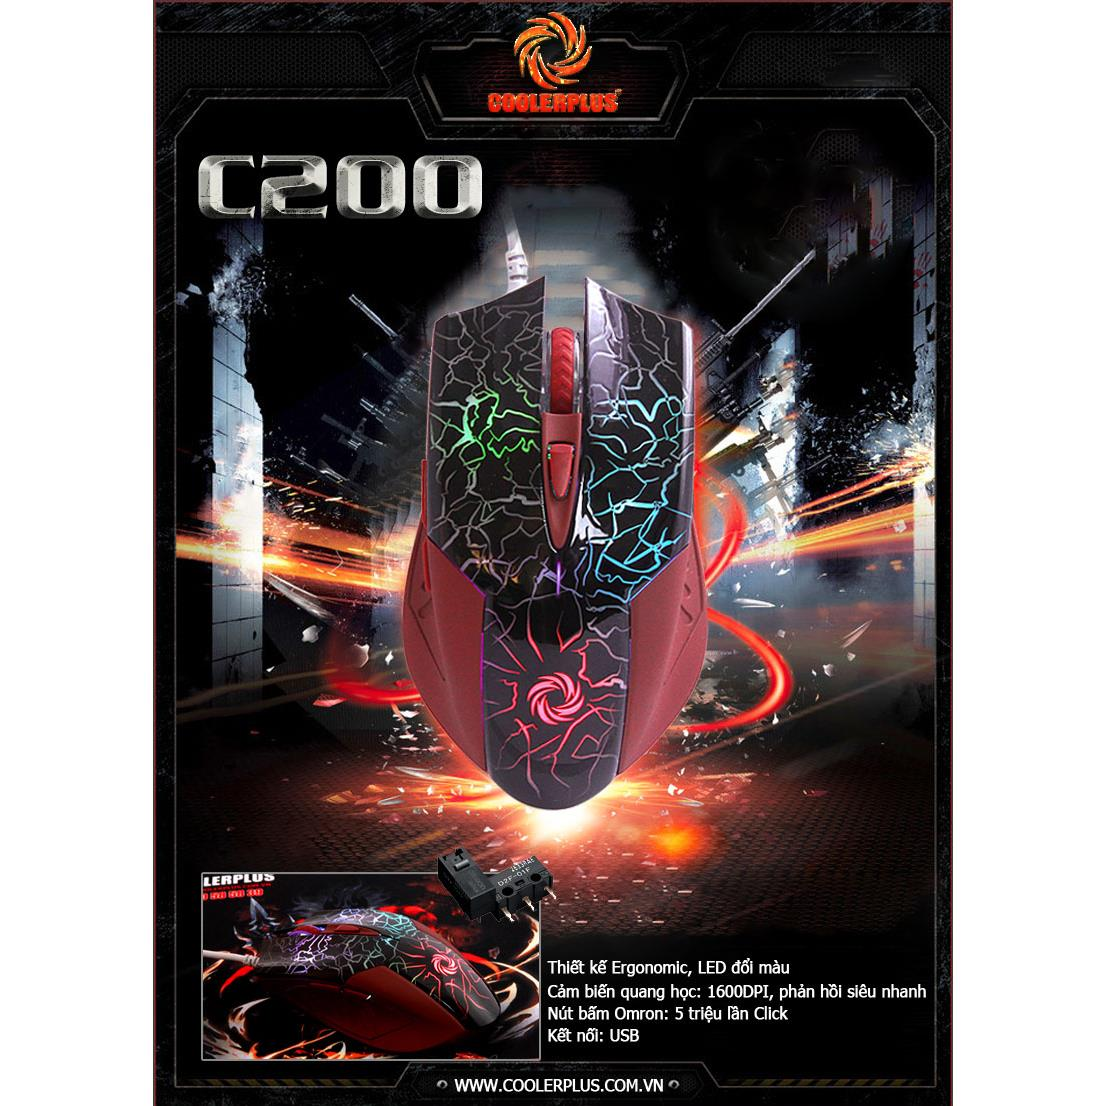 Chuột Game Coolerplus CPM C200